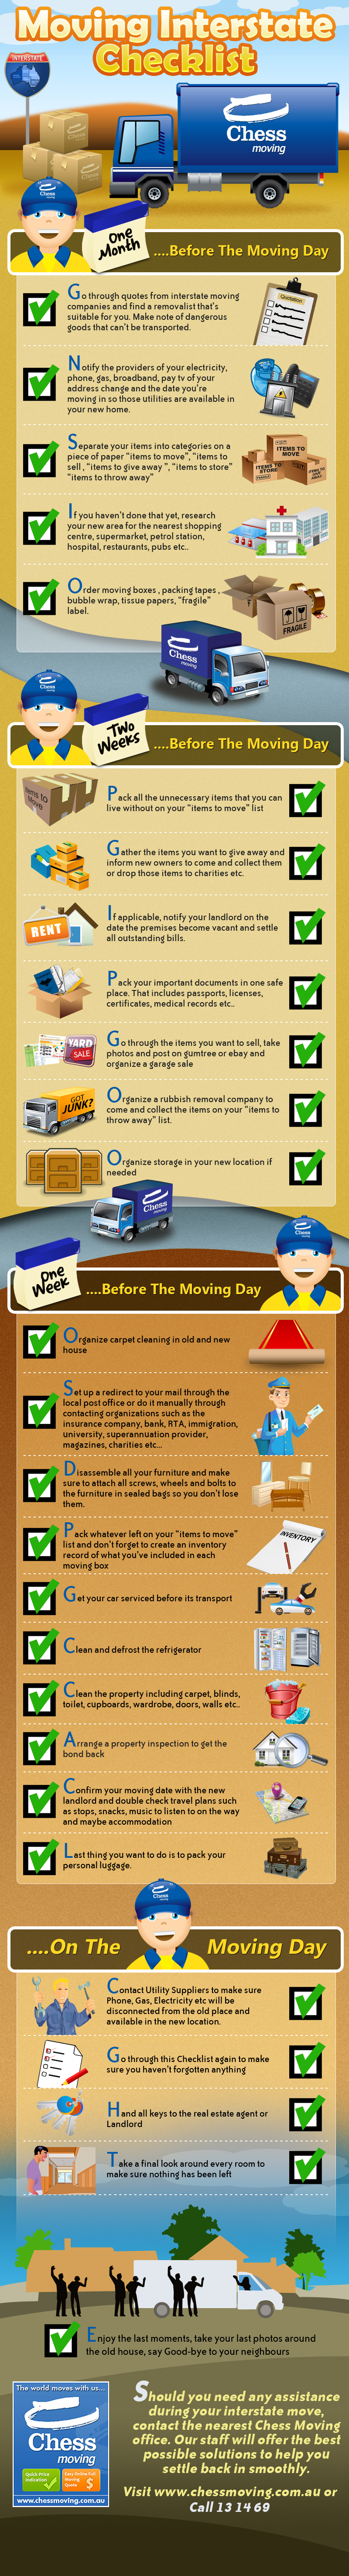 A checklist of items to complete before moving interstate!